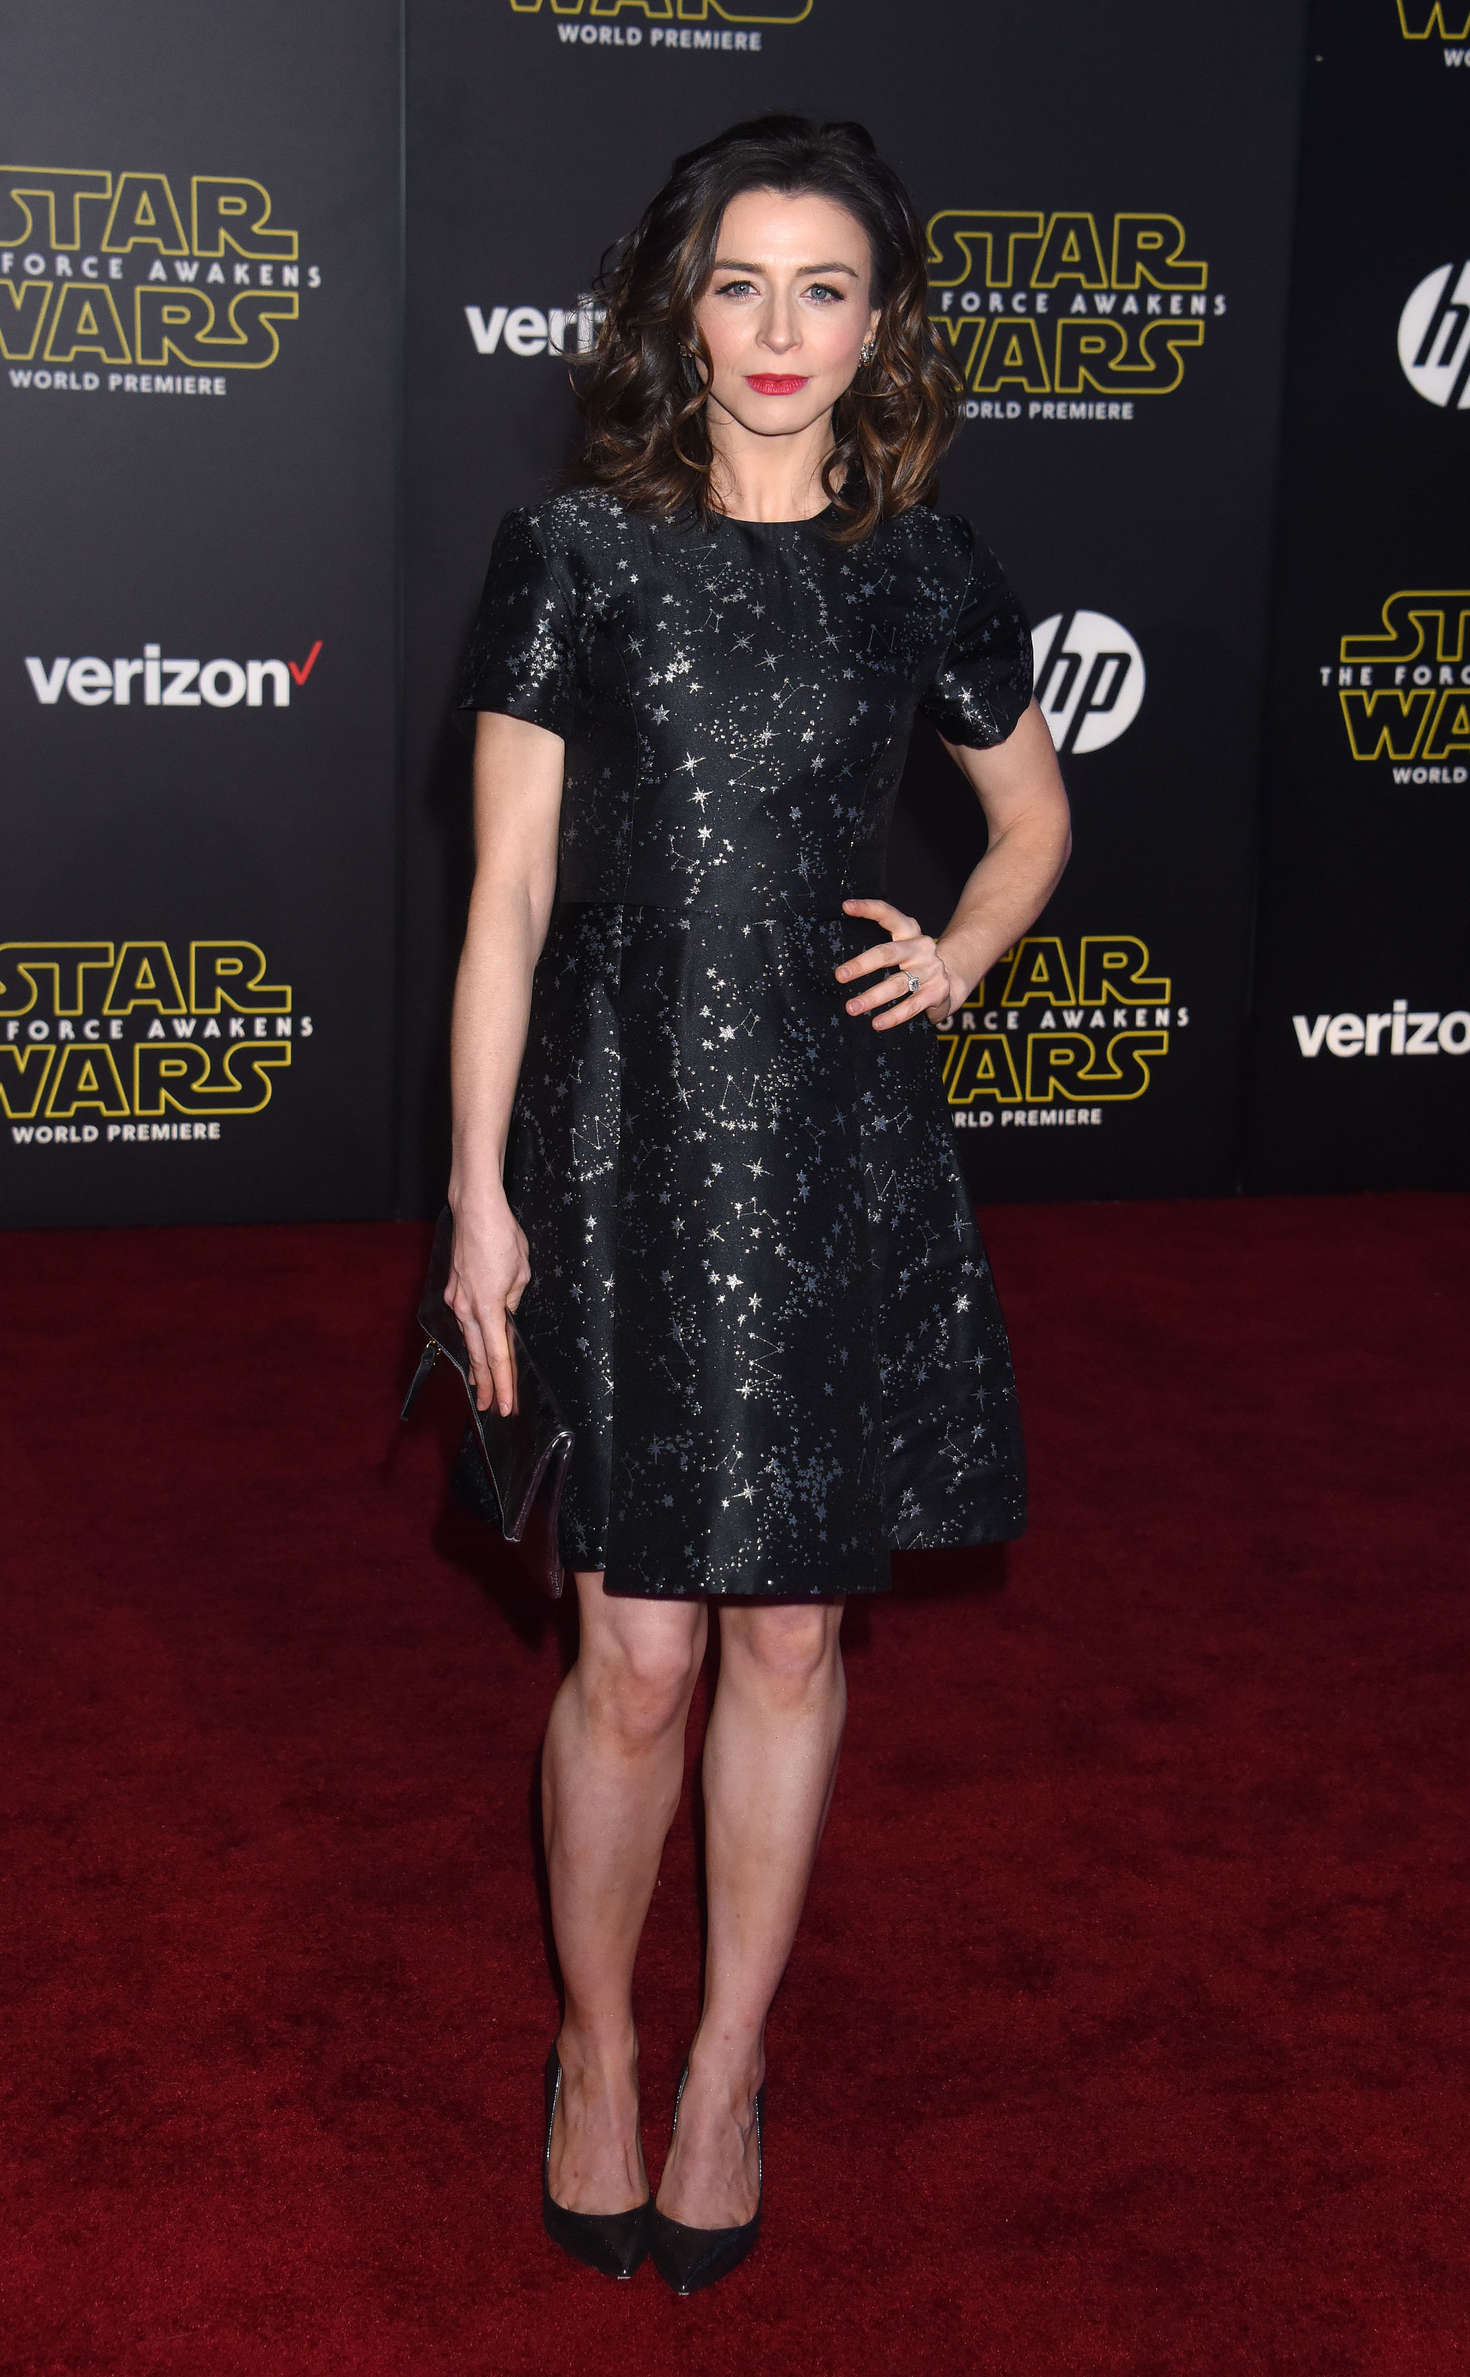 Caterina Scorsone Star Wars The Force Awakens Premiere in Hollywood